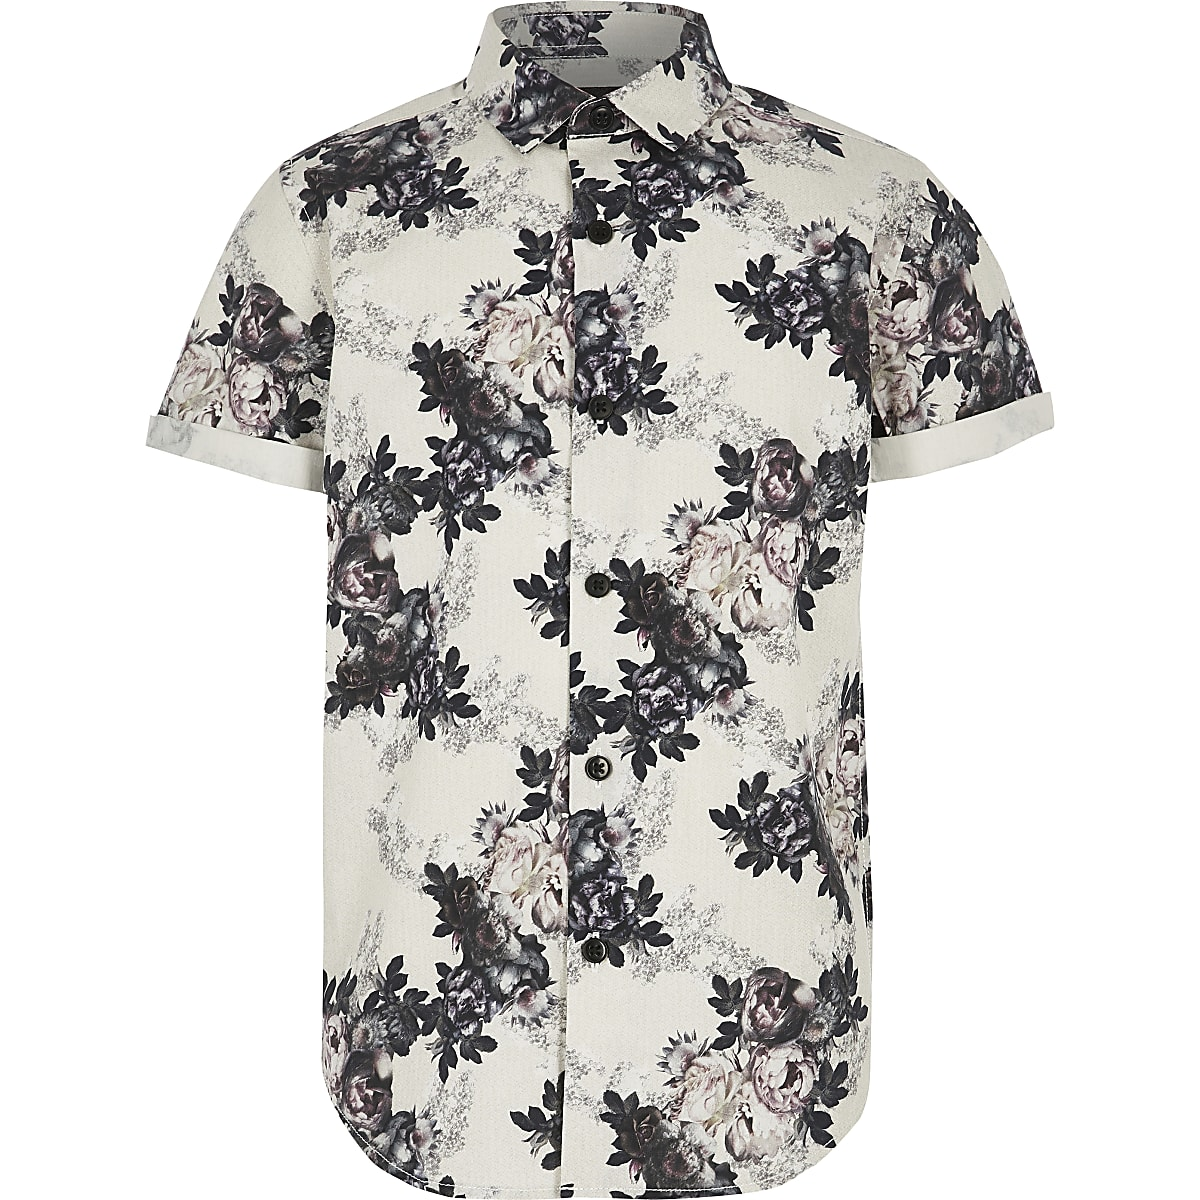 Boys white floral poplin shirt